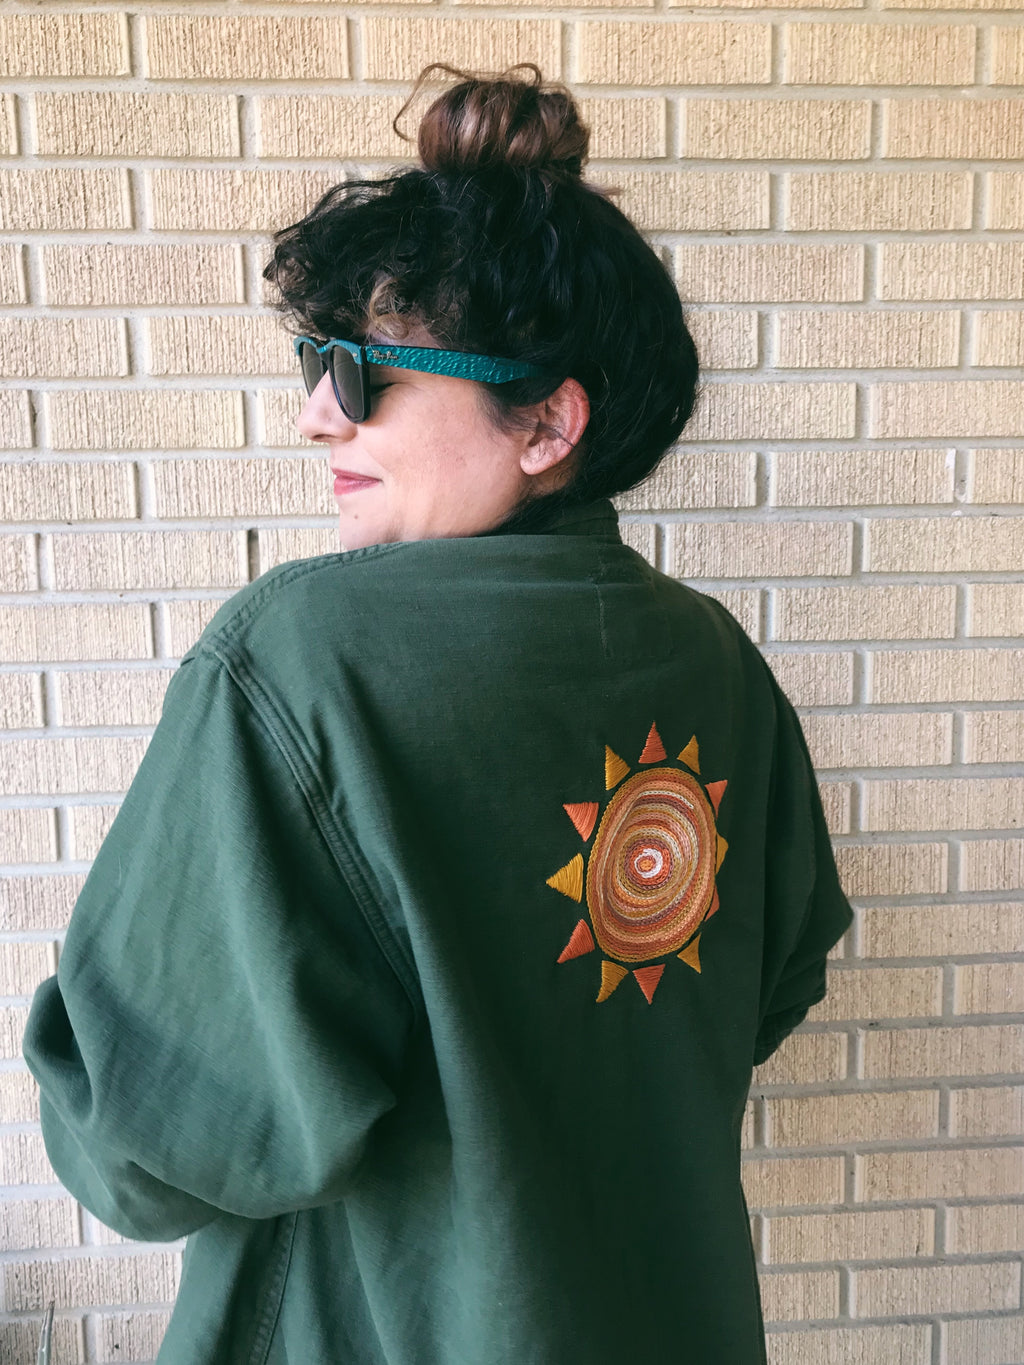 Vietnam Era Army Jacket with Sun Embroidery